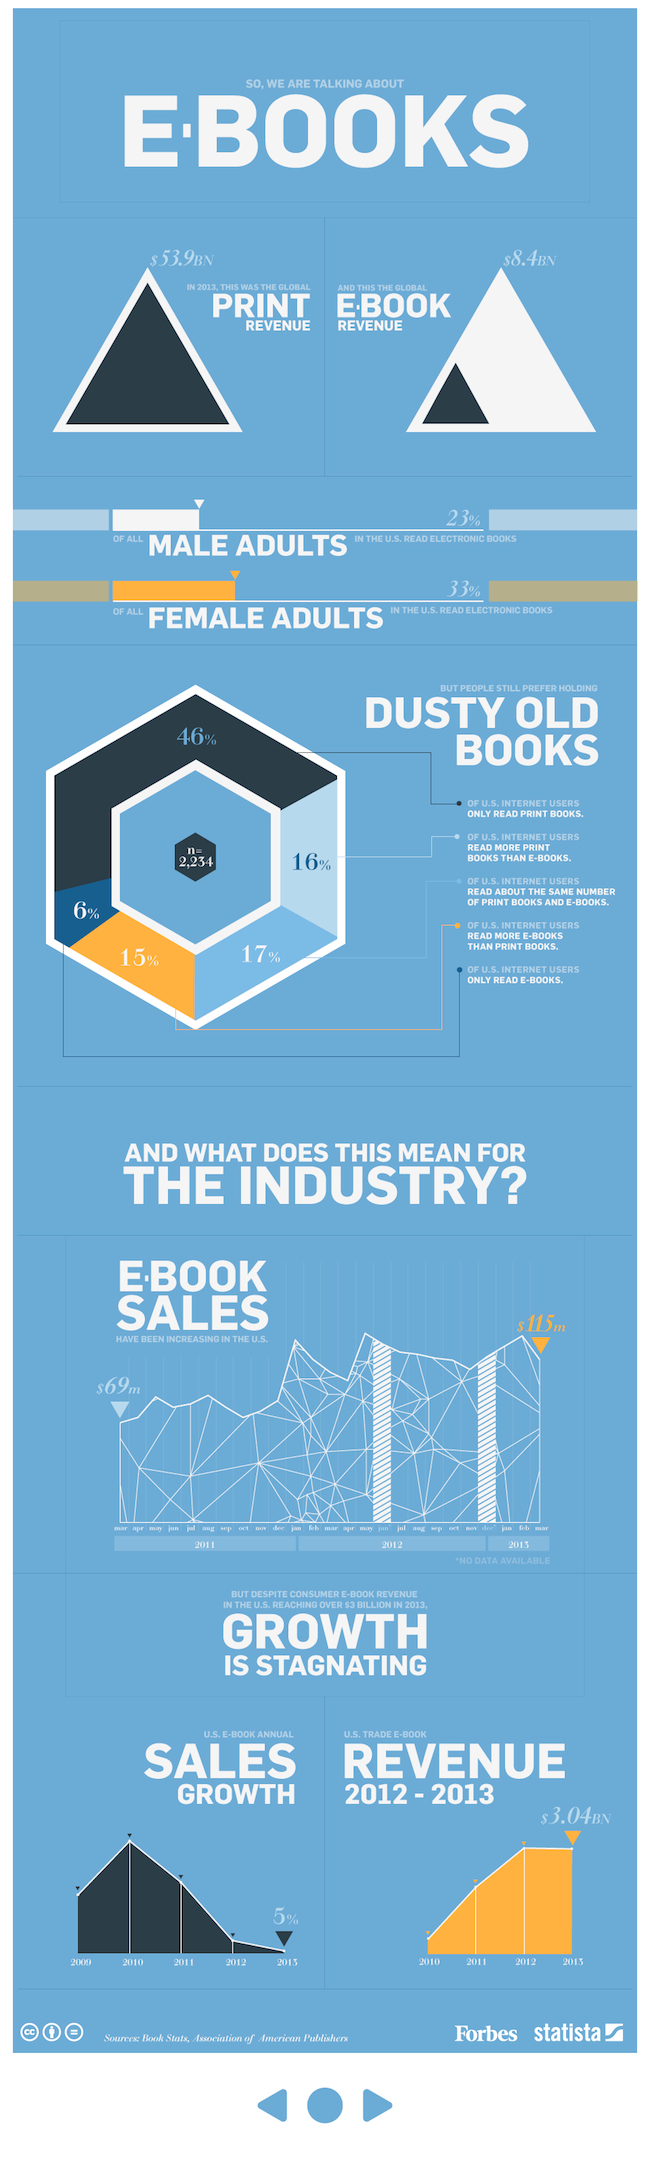 The E-Book Industry Infographic